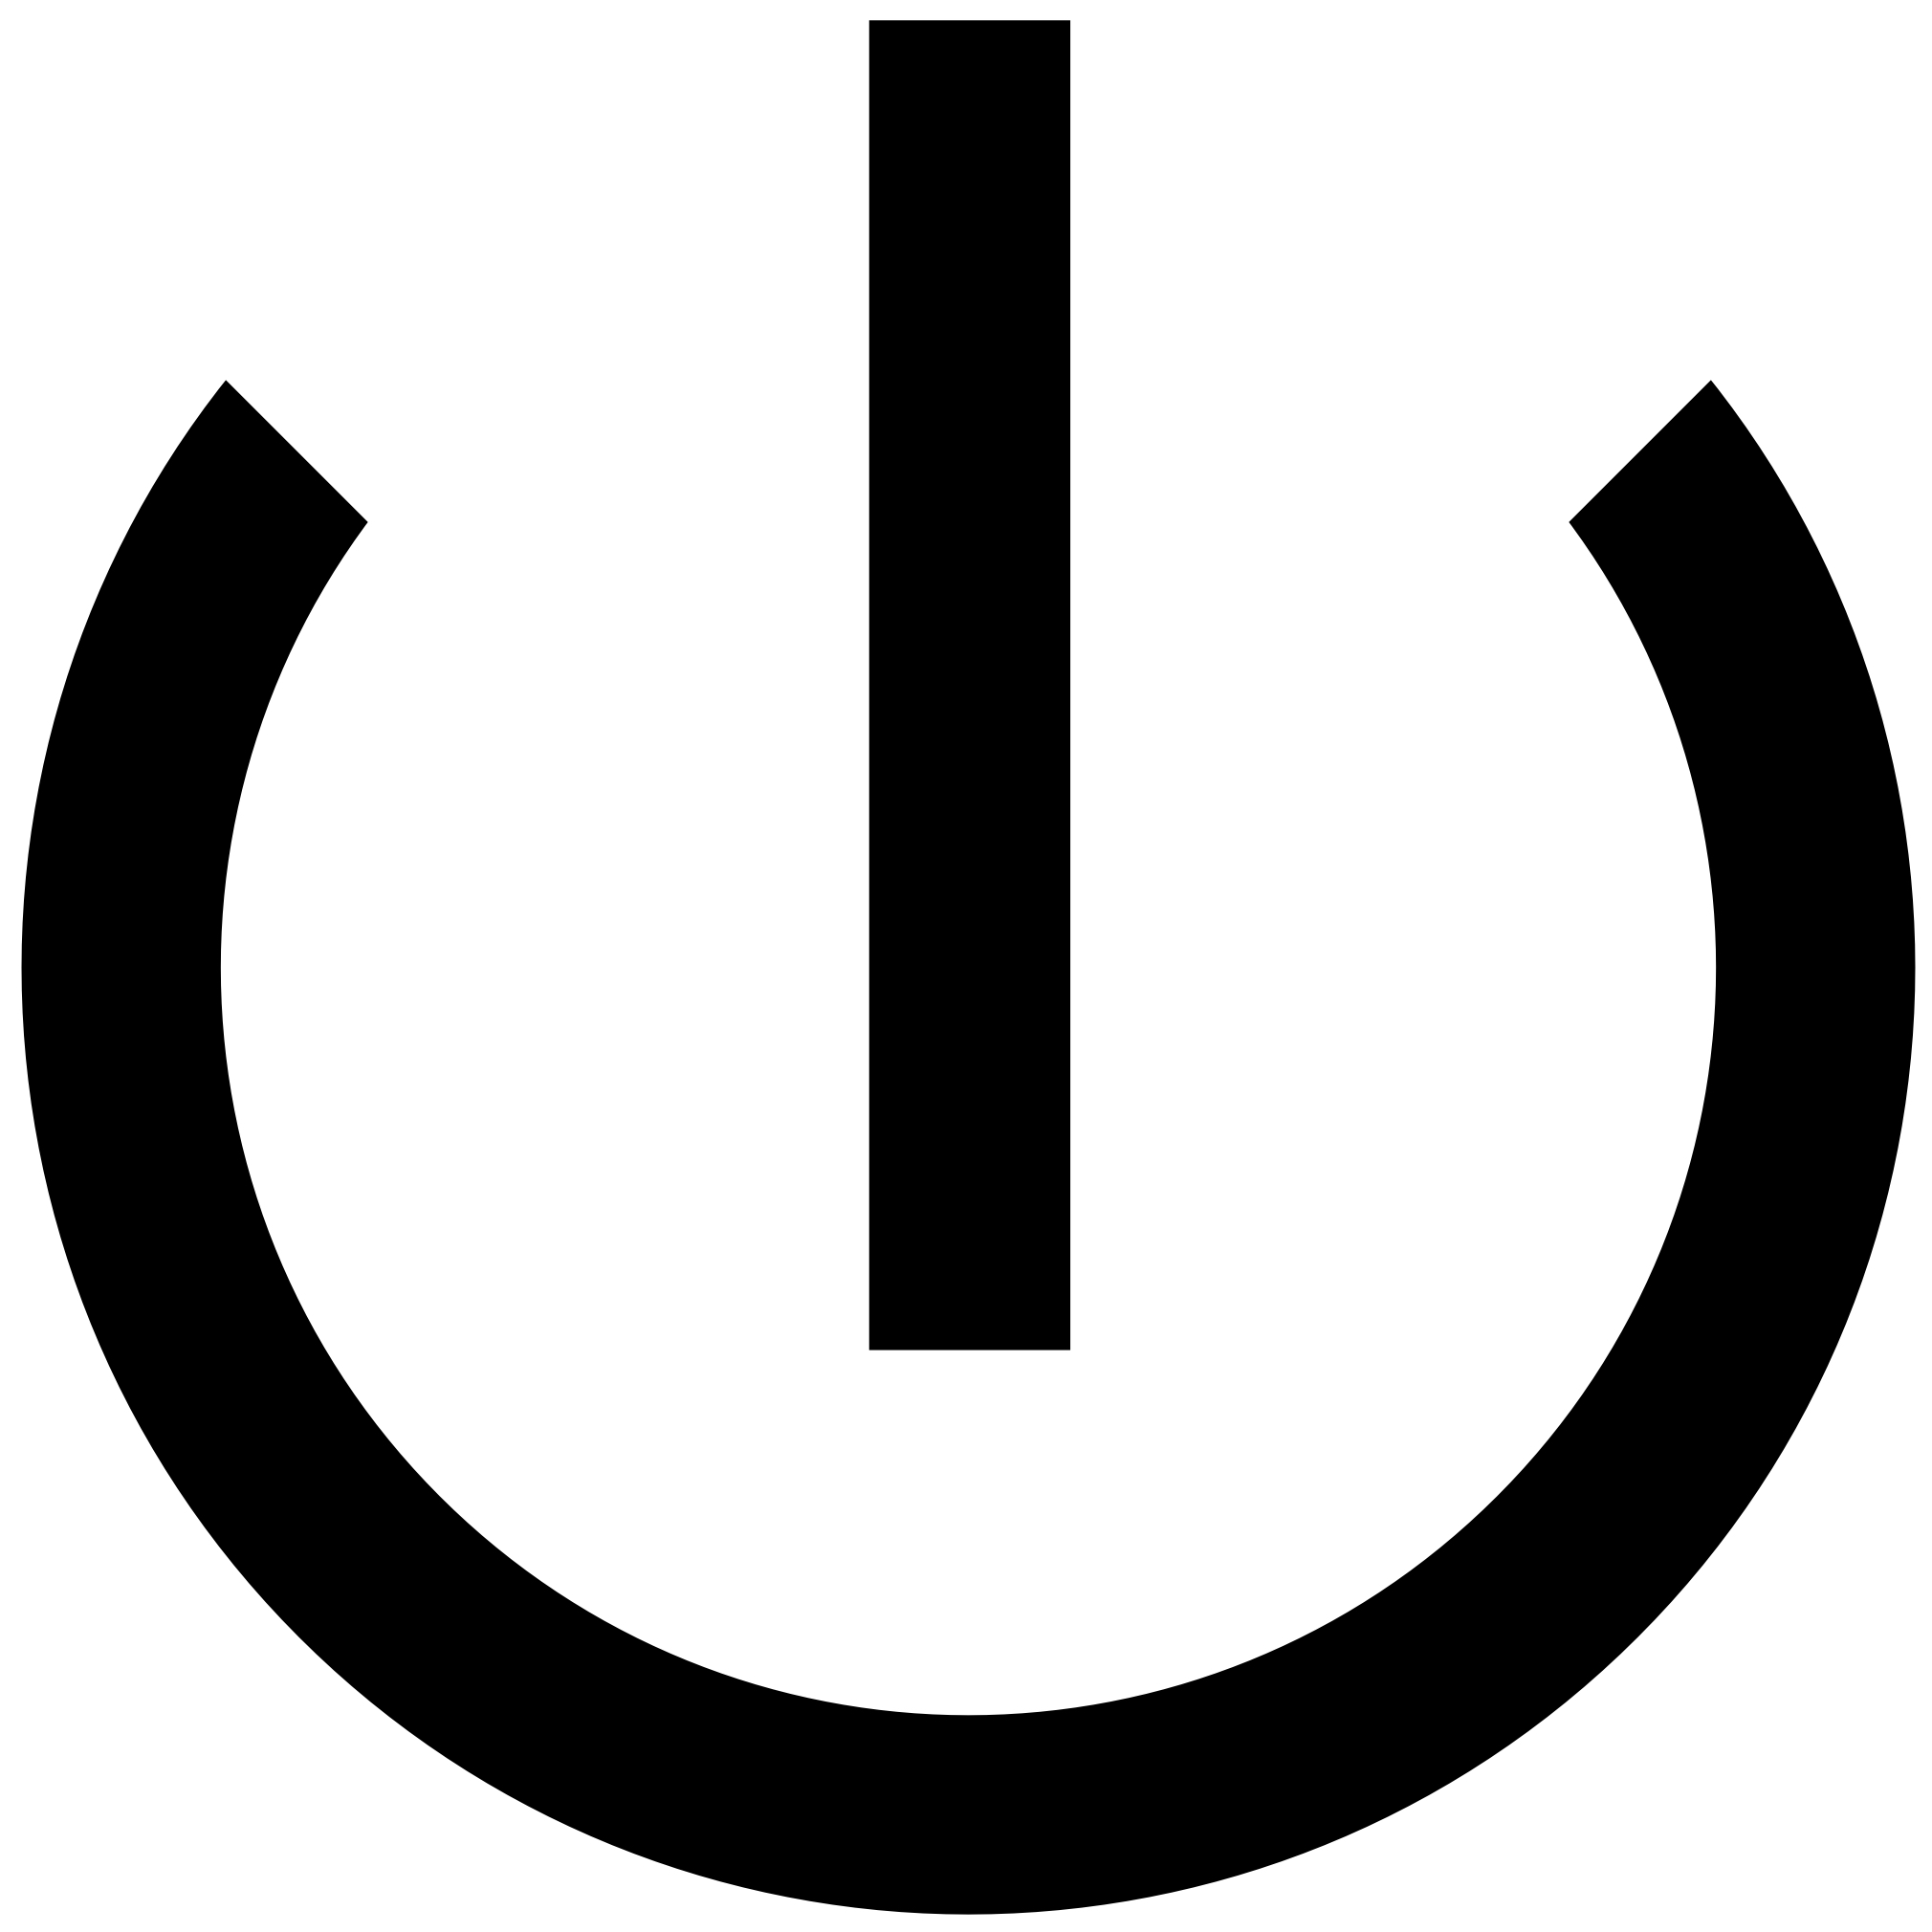 utopia powersymbol, ©saschademarmels